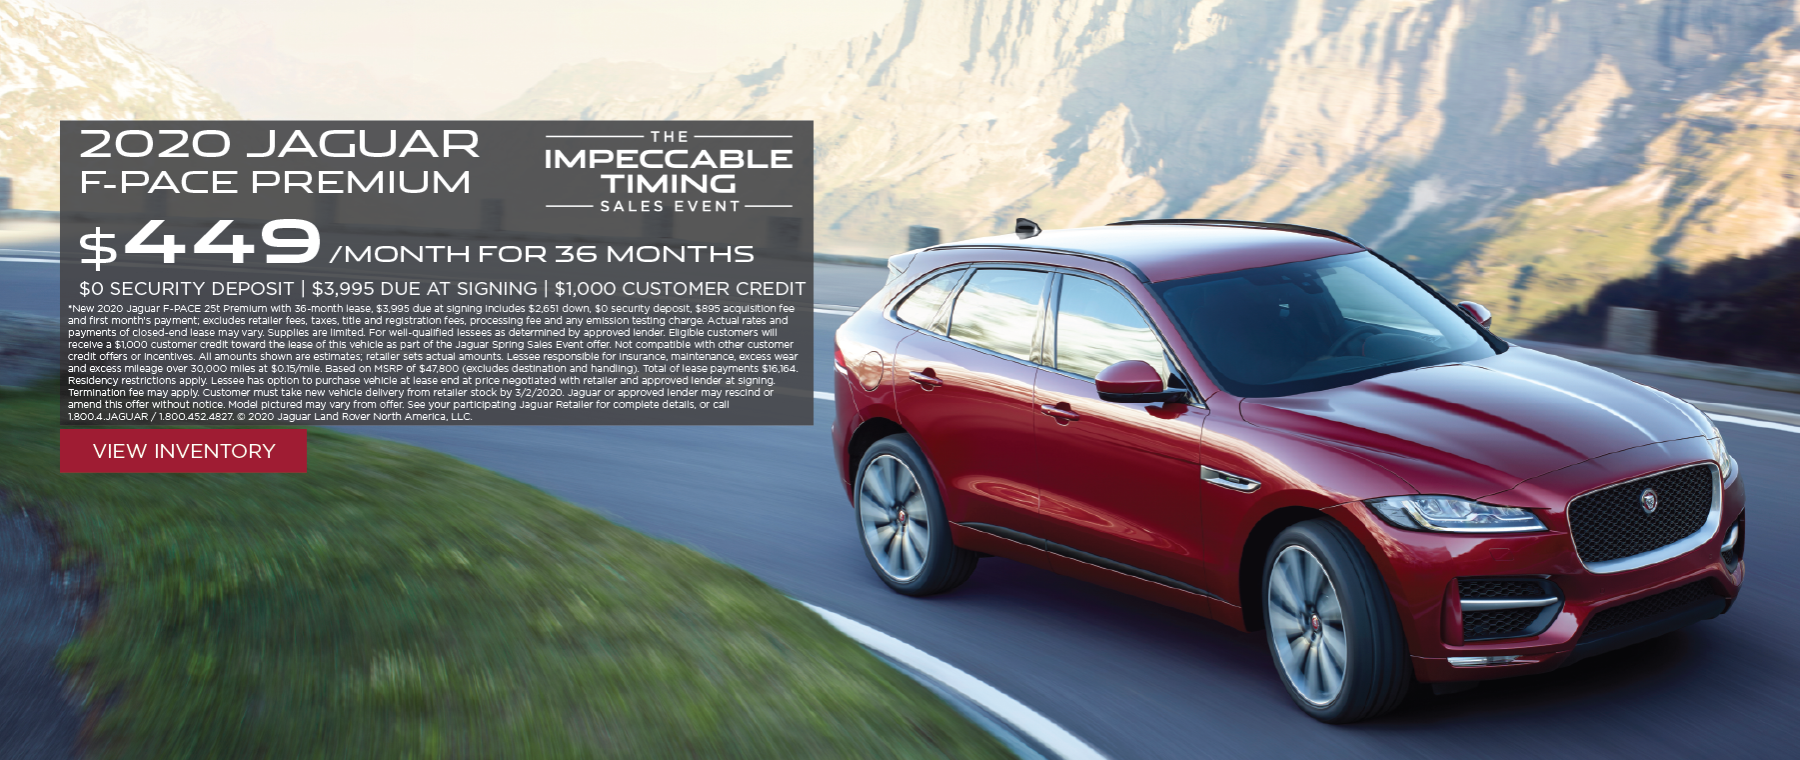 Silver 2020 F-Pace Premium on hilly road with mountains in distance. Lease for $479/mo for 36 months with $3995 cash due at signing *New 2020 Jaguar F-PACE 25t Premium with 36-month lease, $3,995 due at signing includes $2,621 down, $0 security deposit, $895 acquisition fee and first month's payment; excludes retailer fees, taxes, title and registration fees, processing fee and any emission testing charge. Actual rates and payments of closed-end lease may vary. Supplies are limited. For well-qualified lessees as determined by approved lender. All amounts shown are estimates; retailer sets actual amounts. Lessee responsible for insurance, maintenance, excess wear and excess mileage over 30,000 miles at $0.15/mile. Based on MSRP of $47,800 (excludes destination and handling). Total of lease payments $17,244. Residency restrictions apply. Lessee has option to purchase vehicle at lease end at price negotiated with retailer and approved lender at signing. Termination fee may apply. Customer must take new vehicle delivery from retailer stock by 1/31/2020. See Jaguar Gulf Coast for full details.